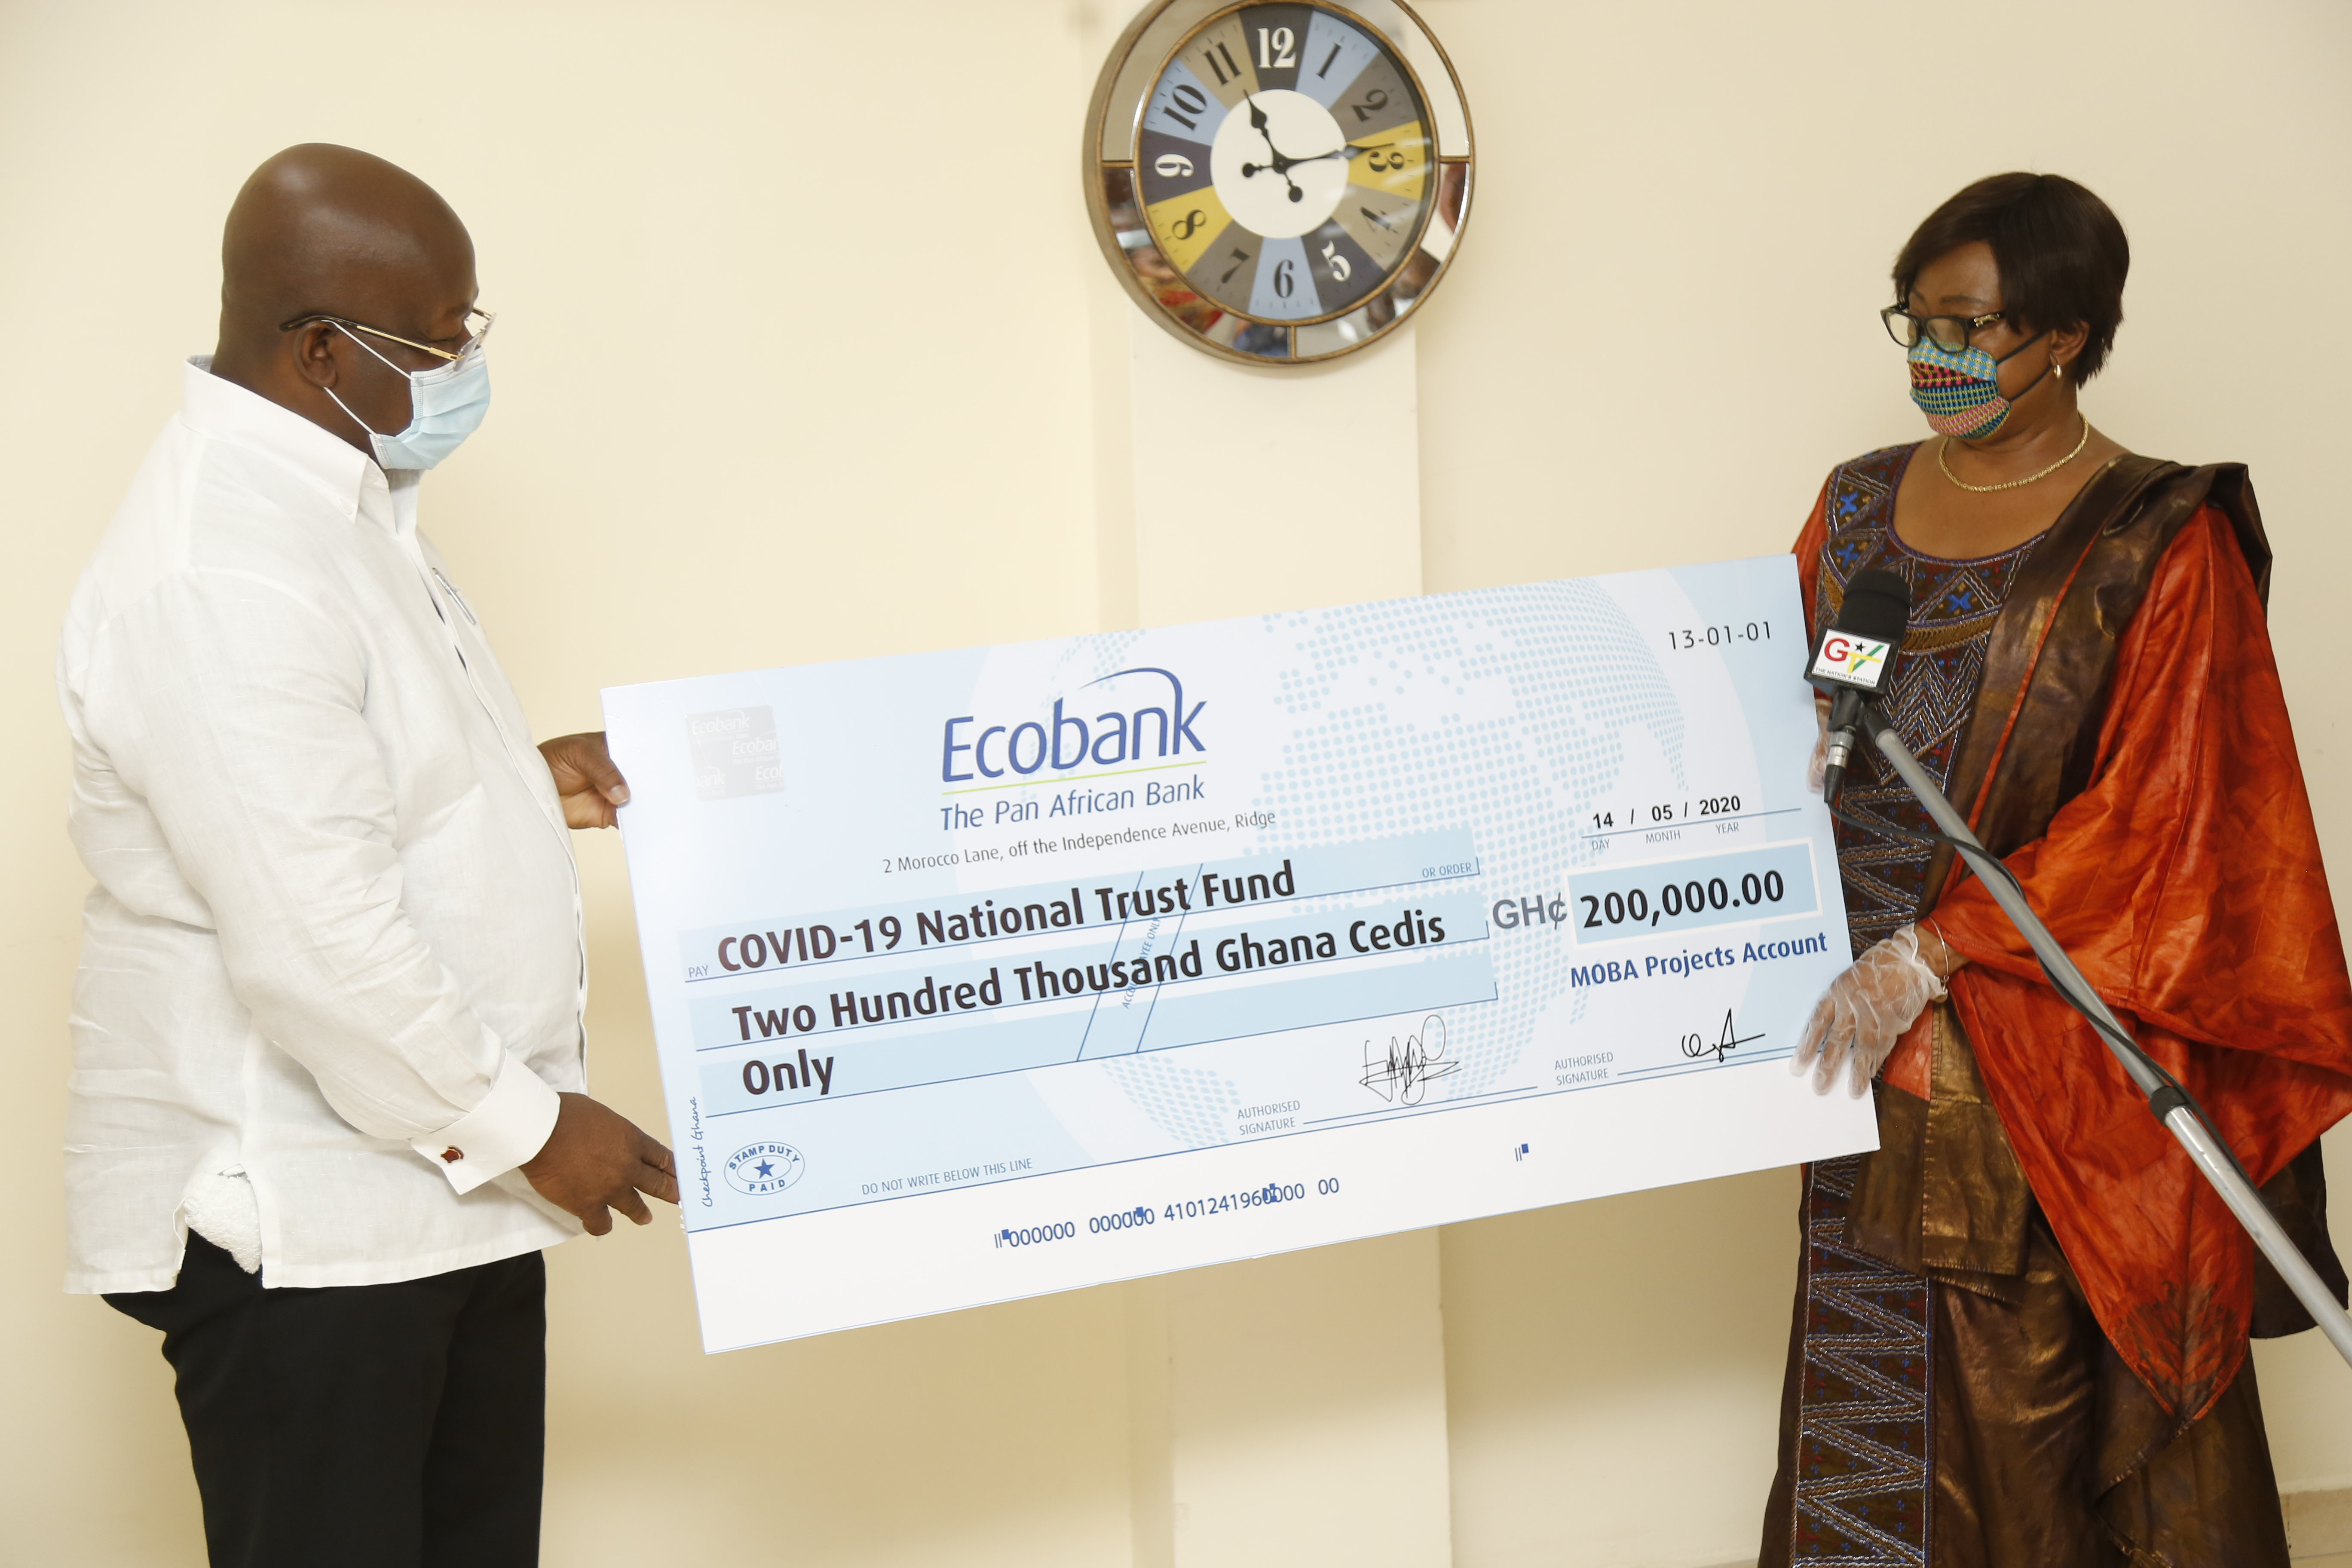 MOBA Donates to COVID-19 National Trust Fund